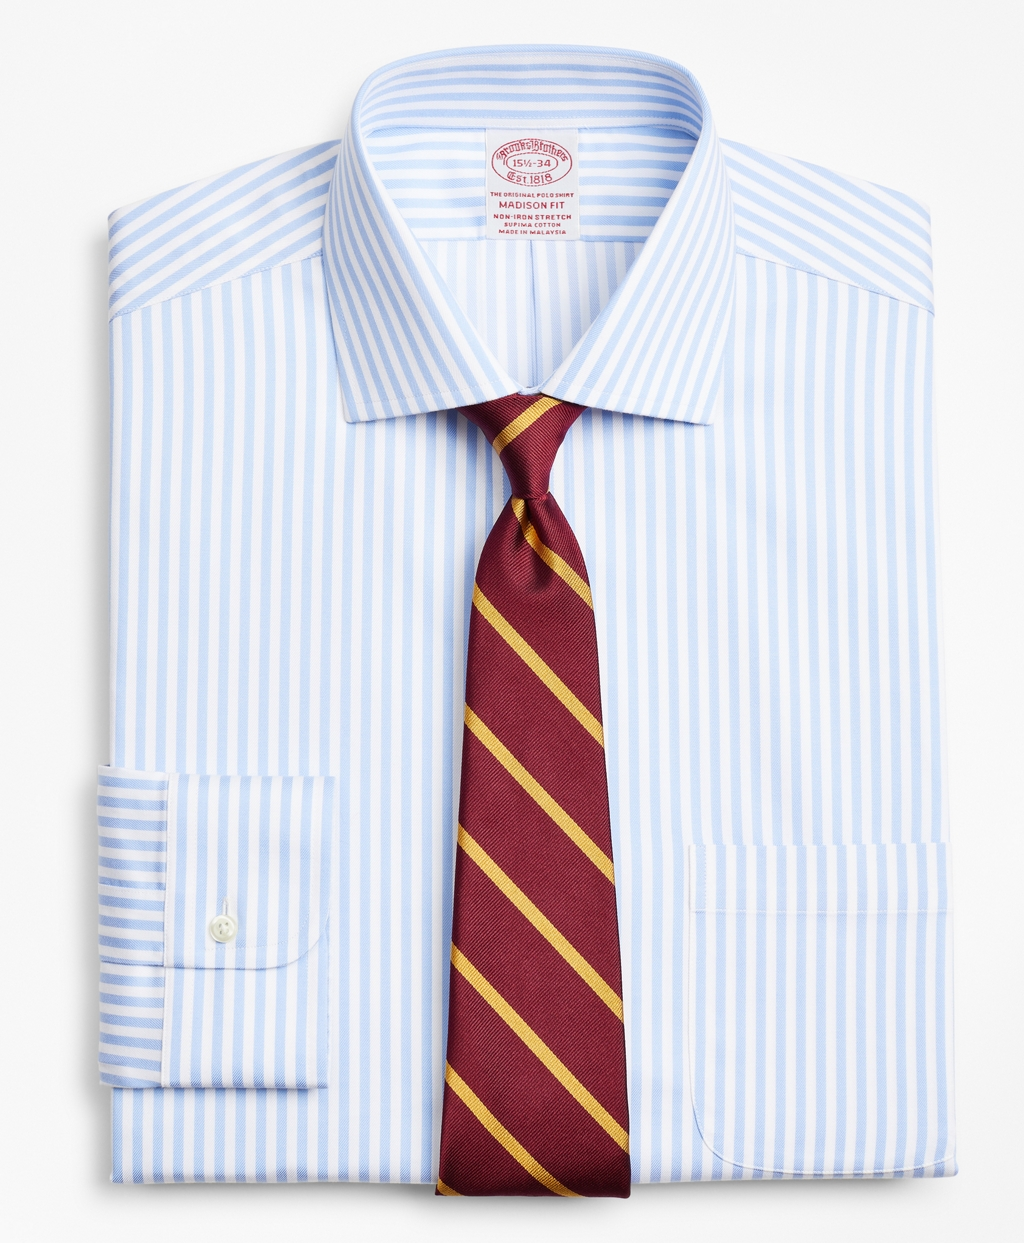 Brooksbrothers Stretch Madison Relaxed-Fit Dress Shirt, Non-Iron Twill English Collar Bold Stripe